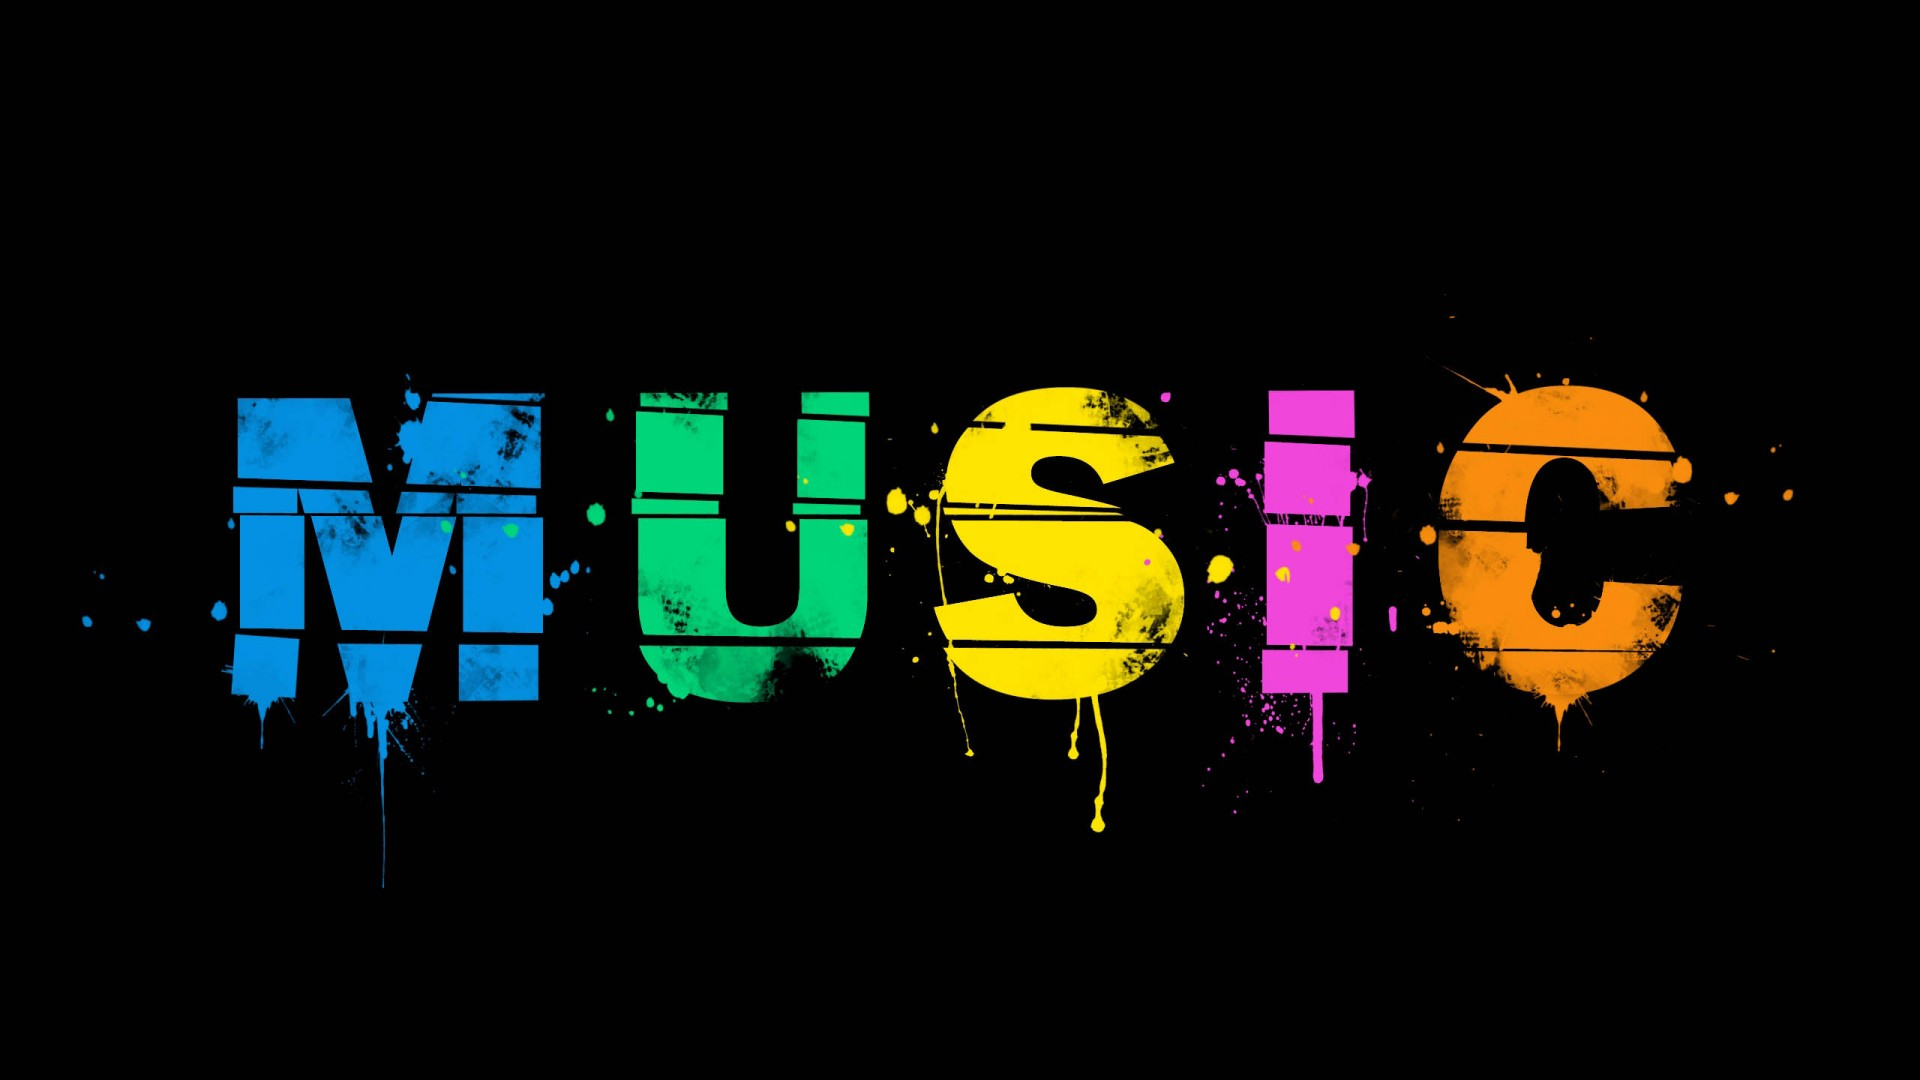 Music Wallpaper 1920x1080 HD - WallpaperSafari